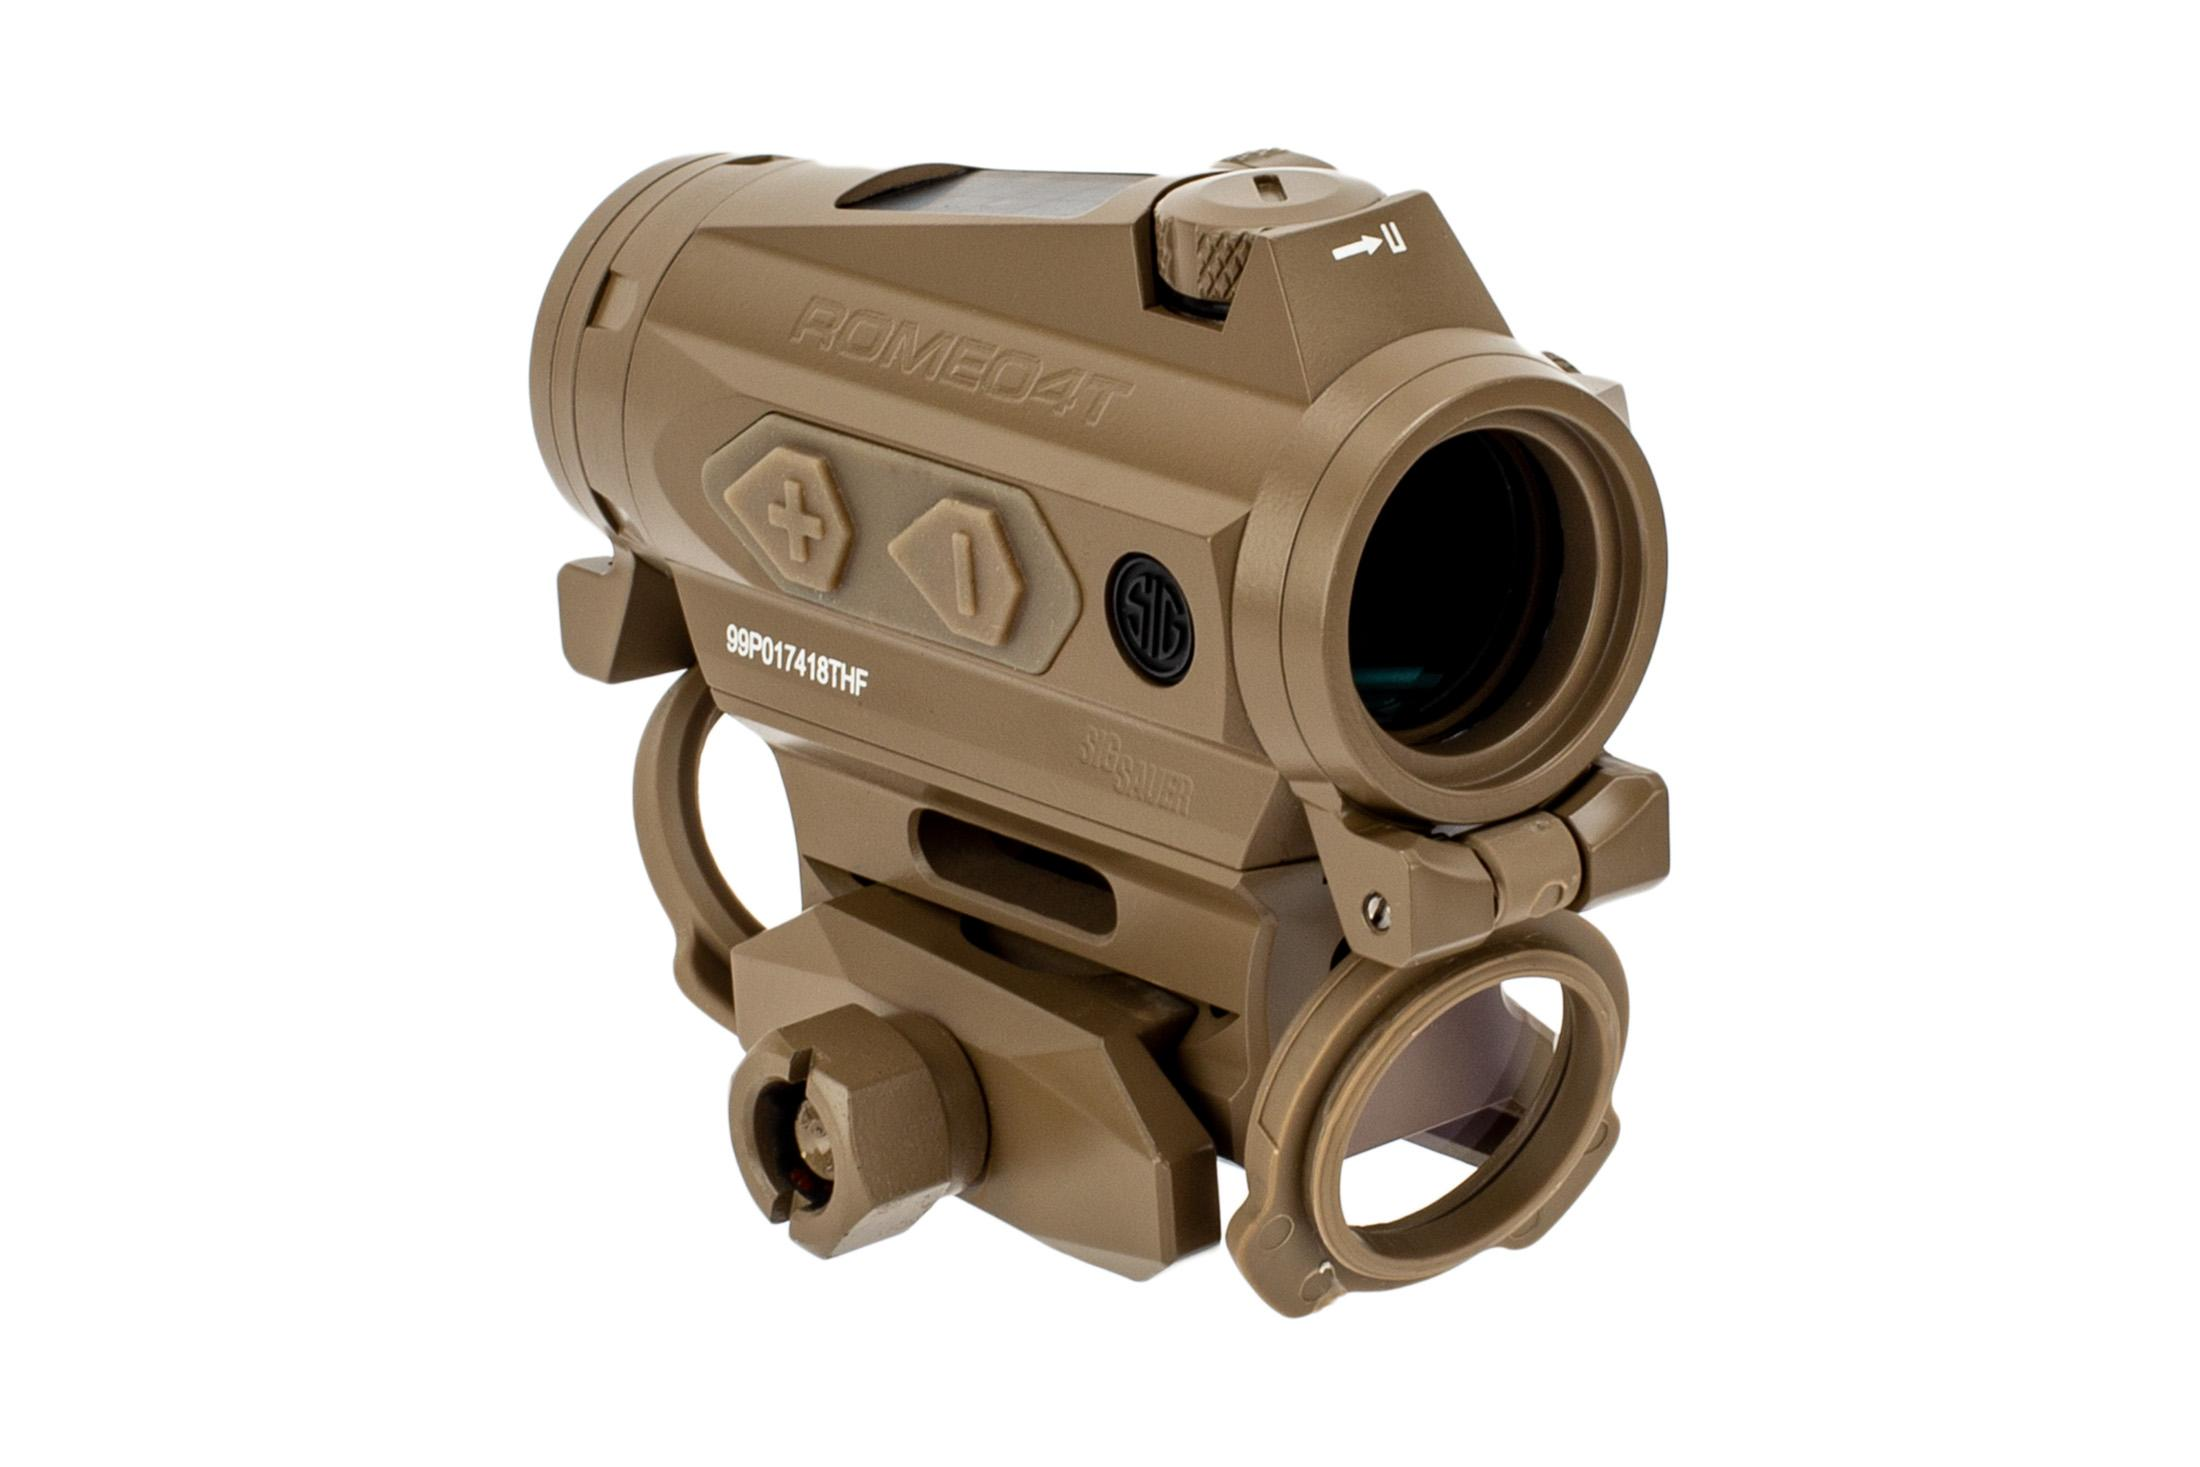 SIG ROMEO 4T red dot flat dark earth includes a picatinny rail mount